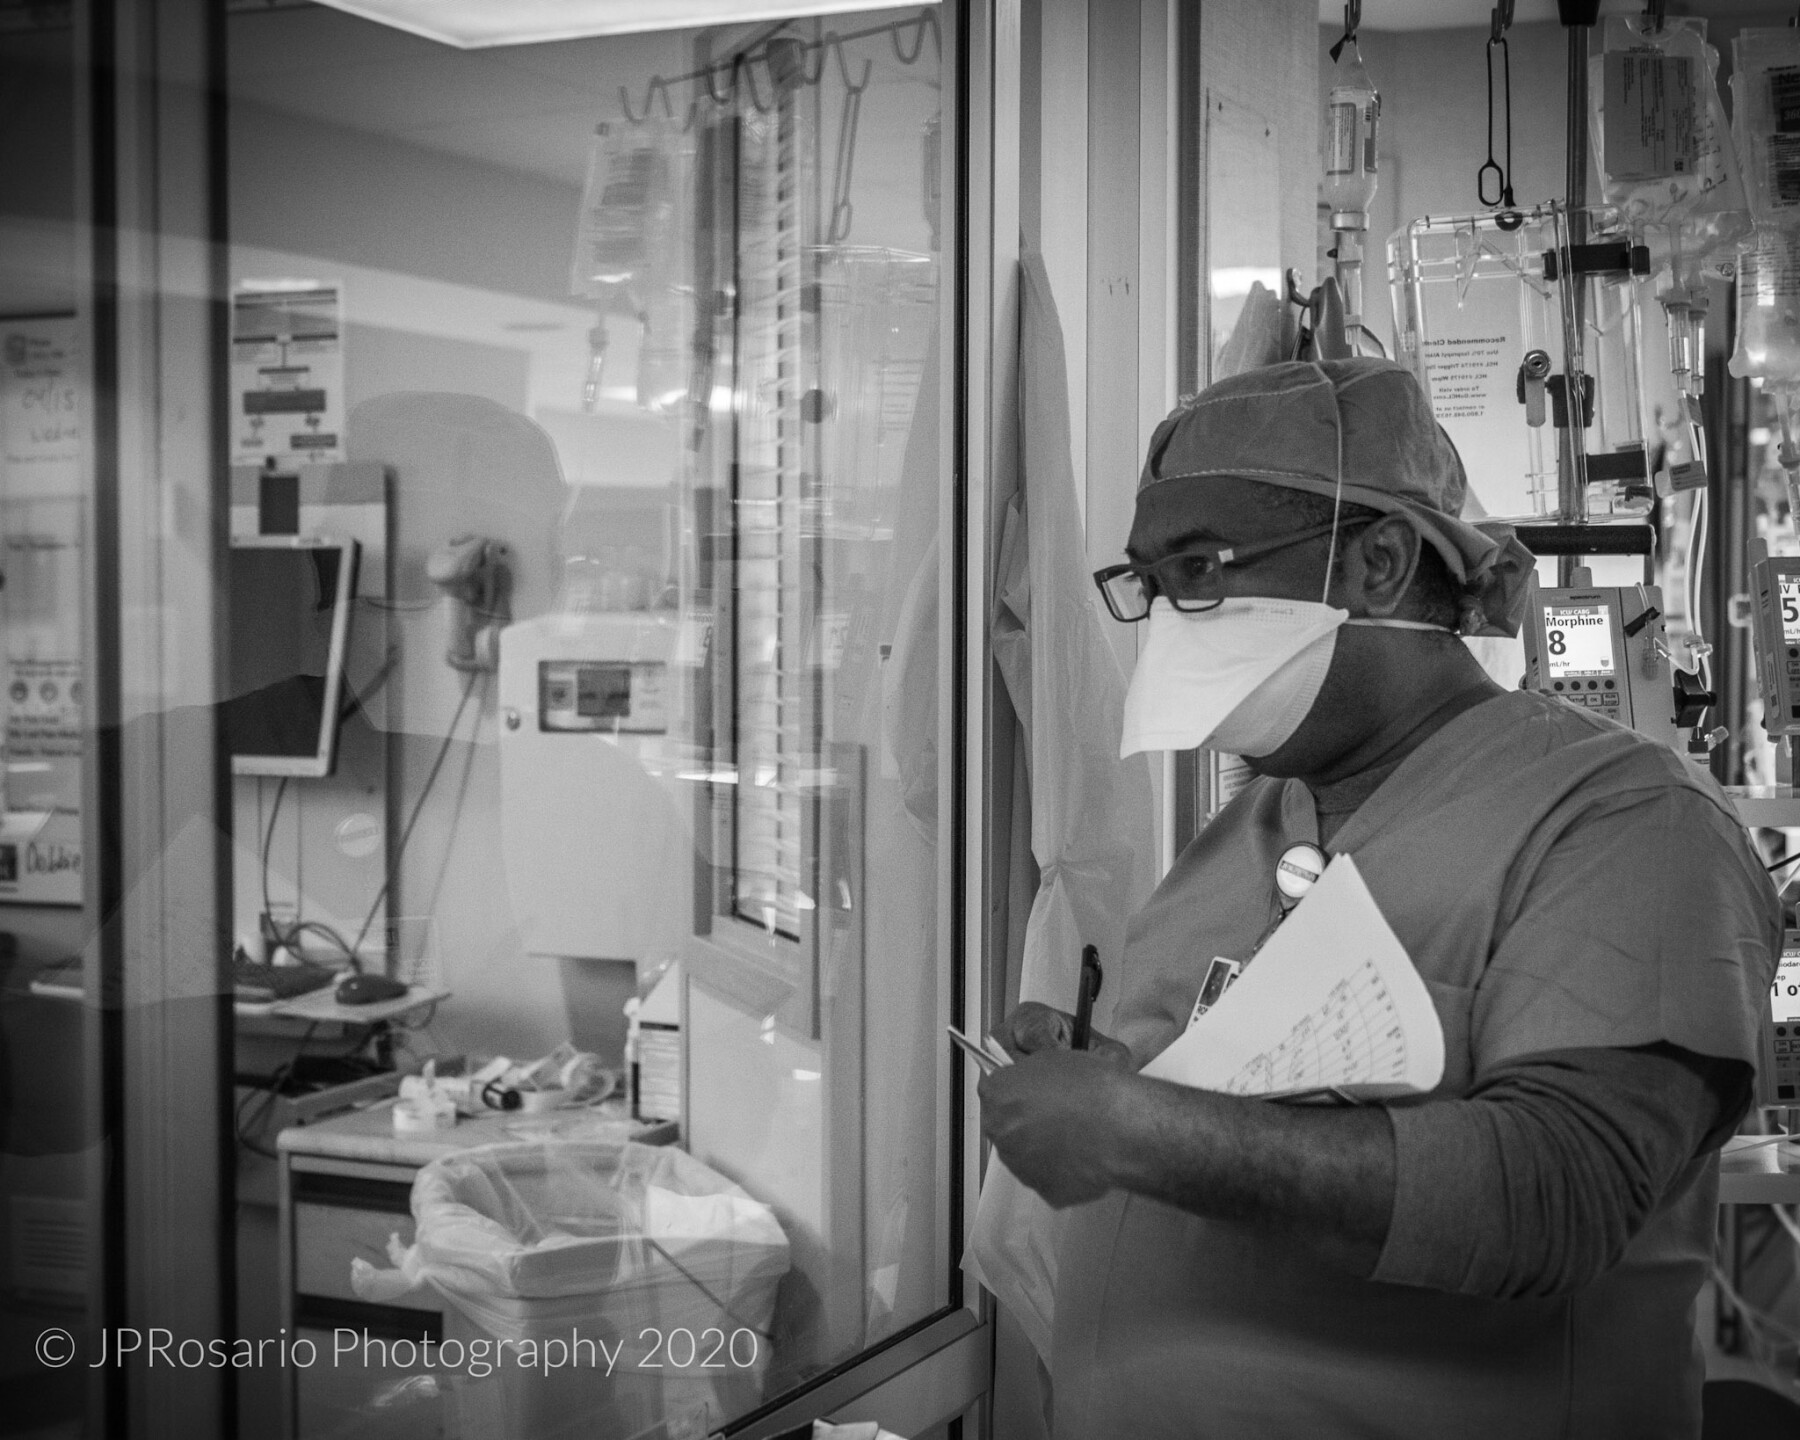 Nurse JP Rosario witnessed how his colleagues bravely helped patients during the pandemic at JFK Medical Center. Rosario took the photos to display the hard work of nurses and doctors during the pandemic.